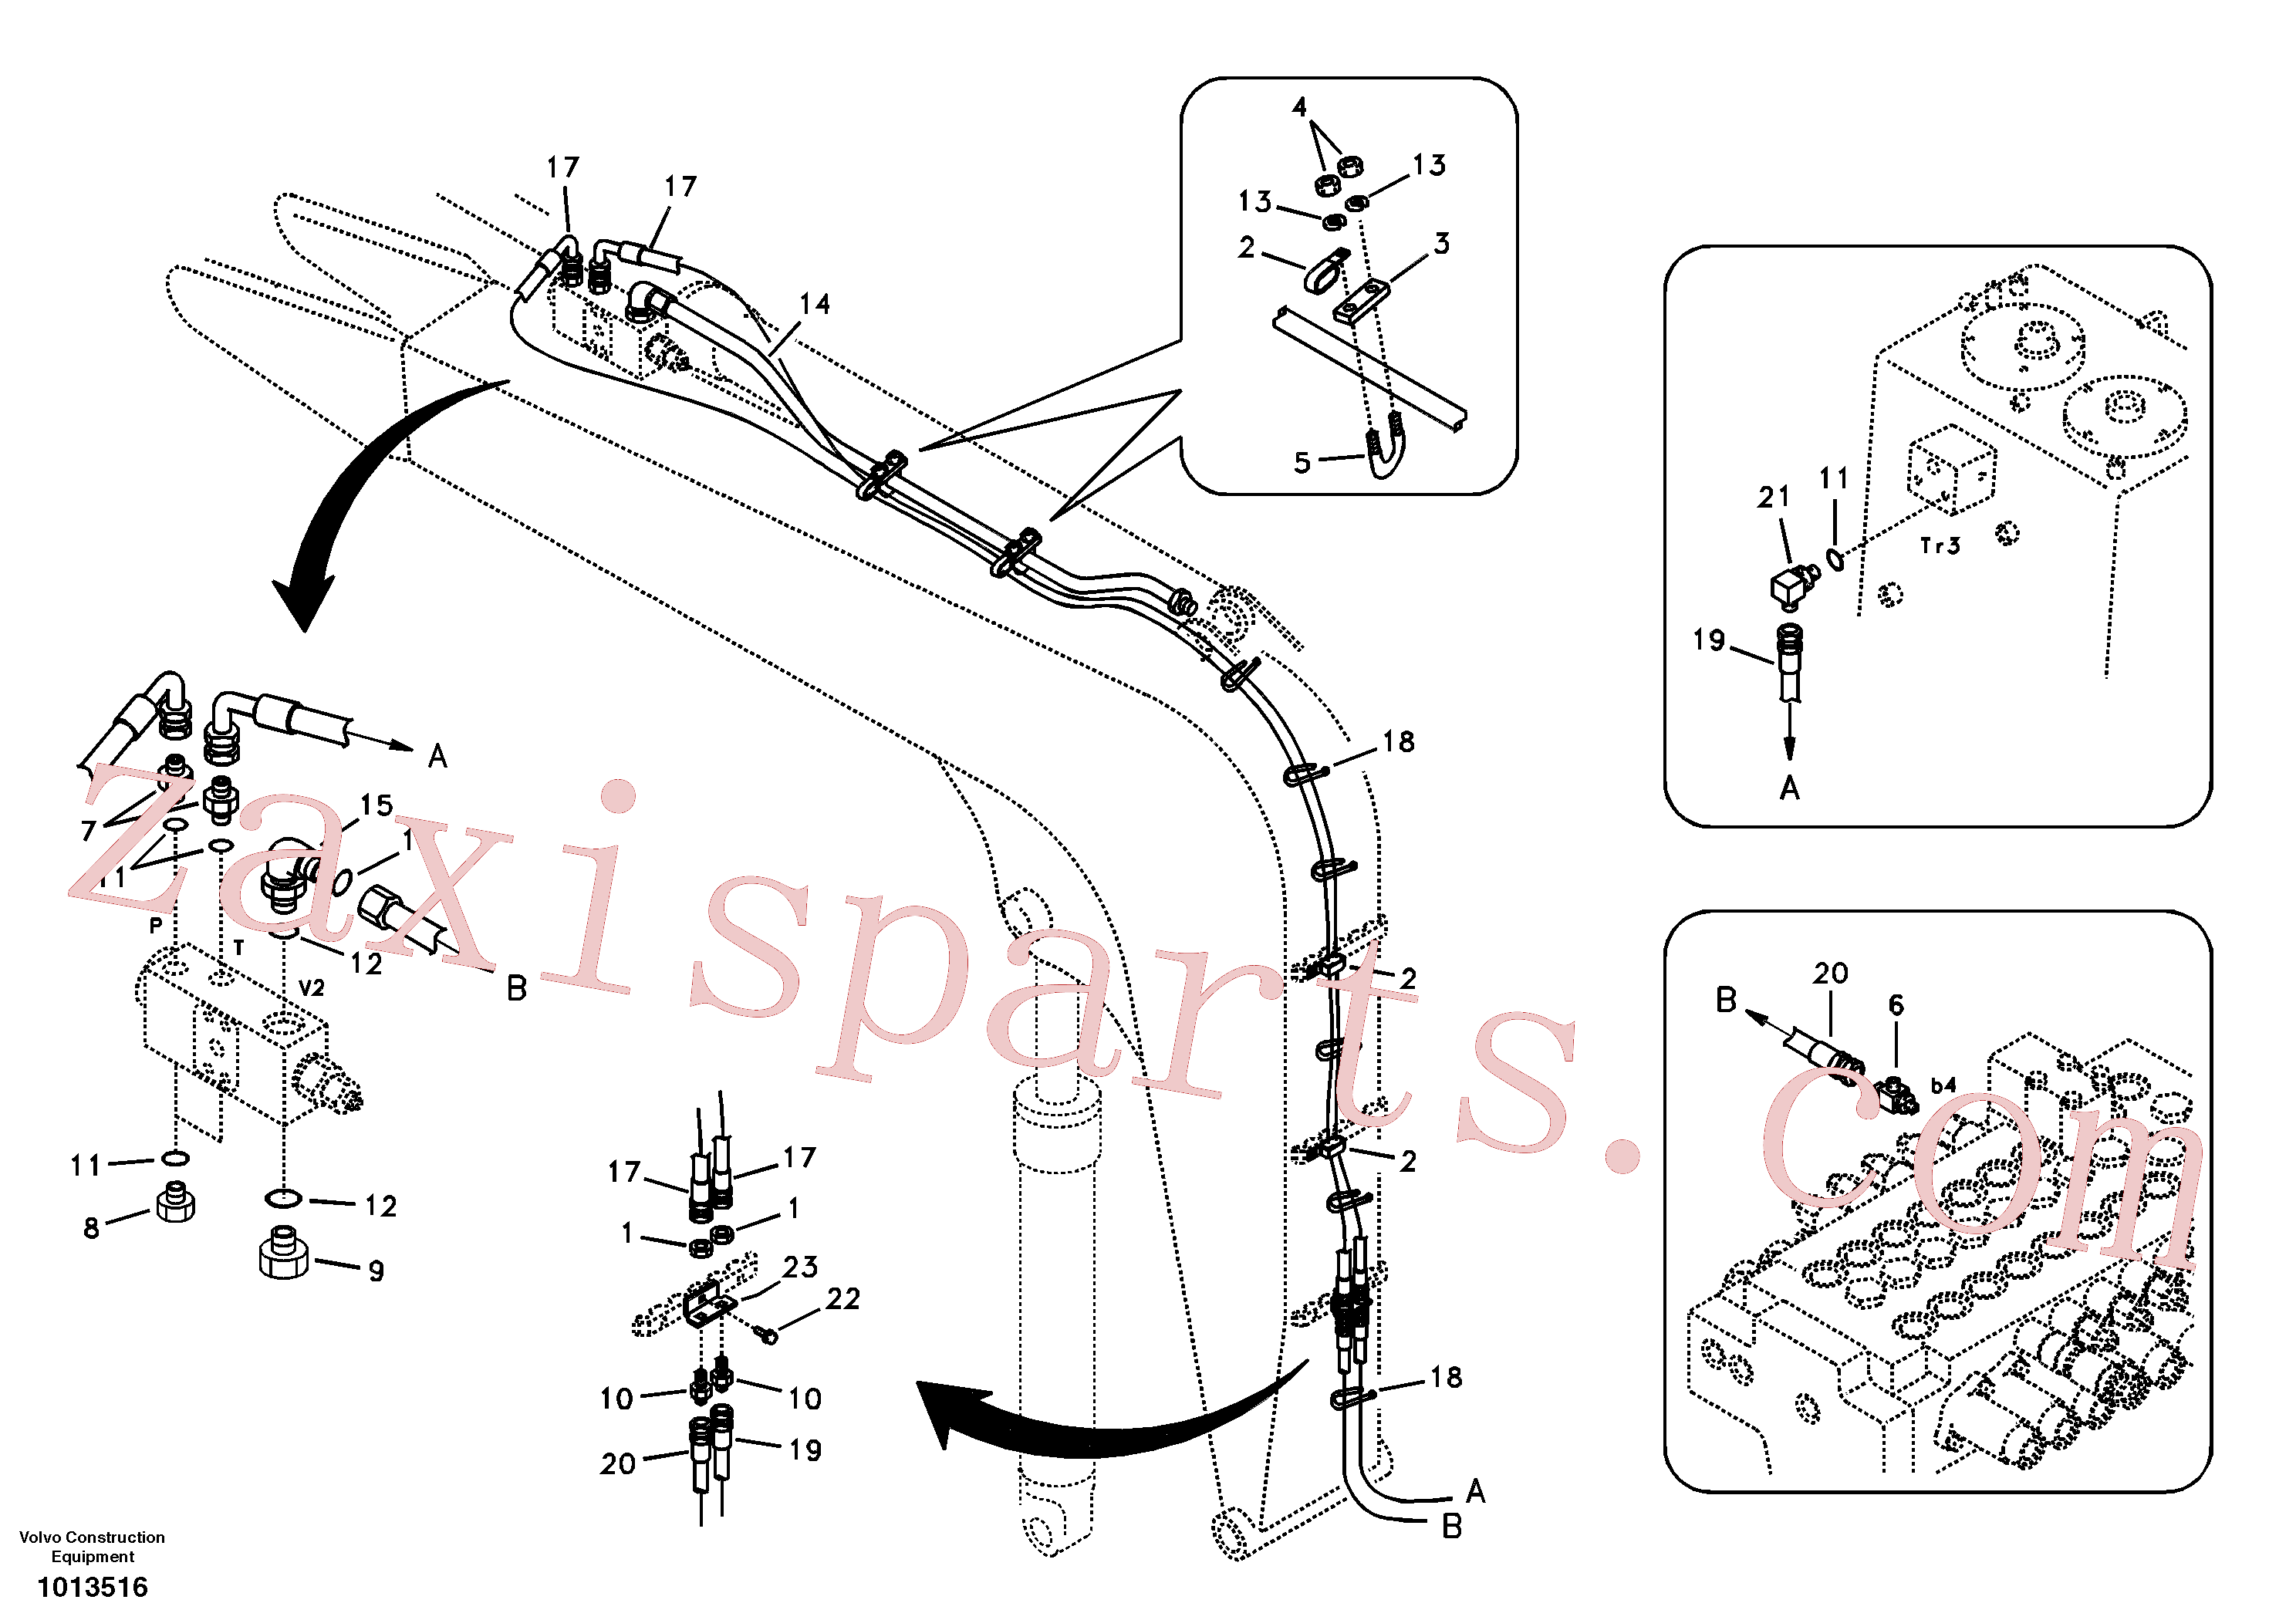 VOE14881394 for Volvo Working hydraulic, dipper arm rupture(1013516 assembly)